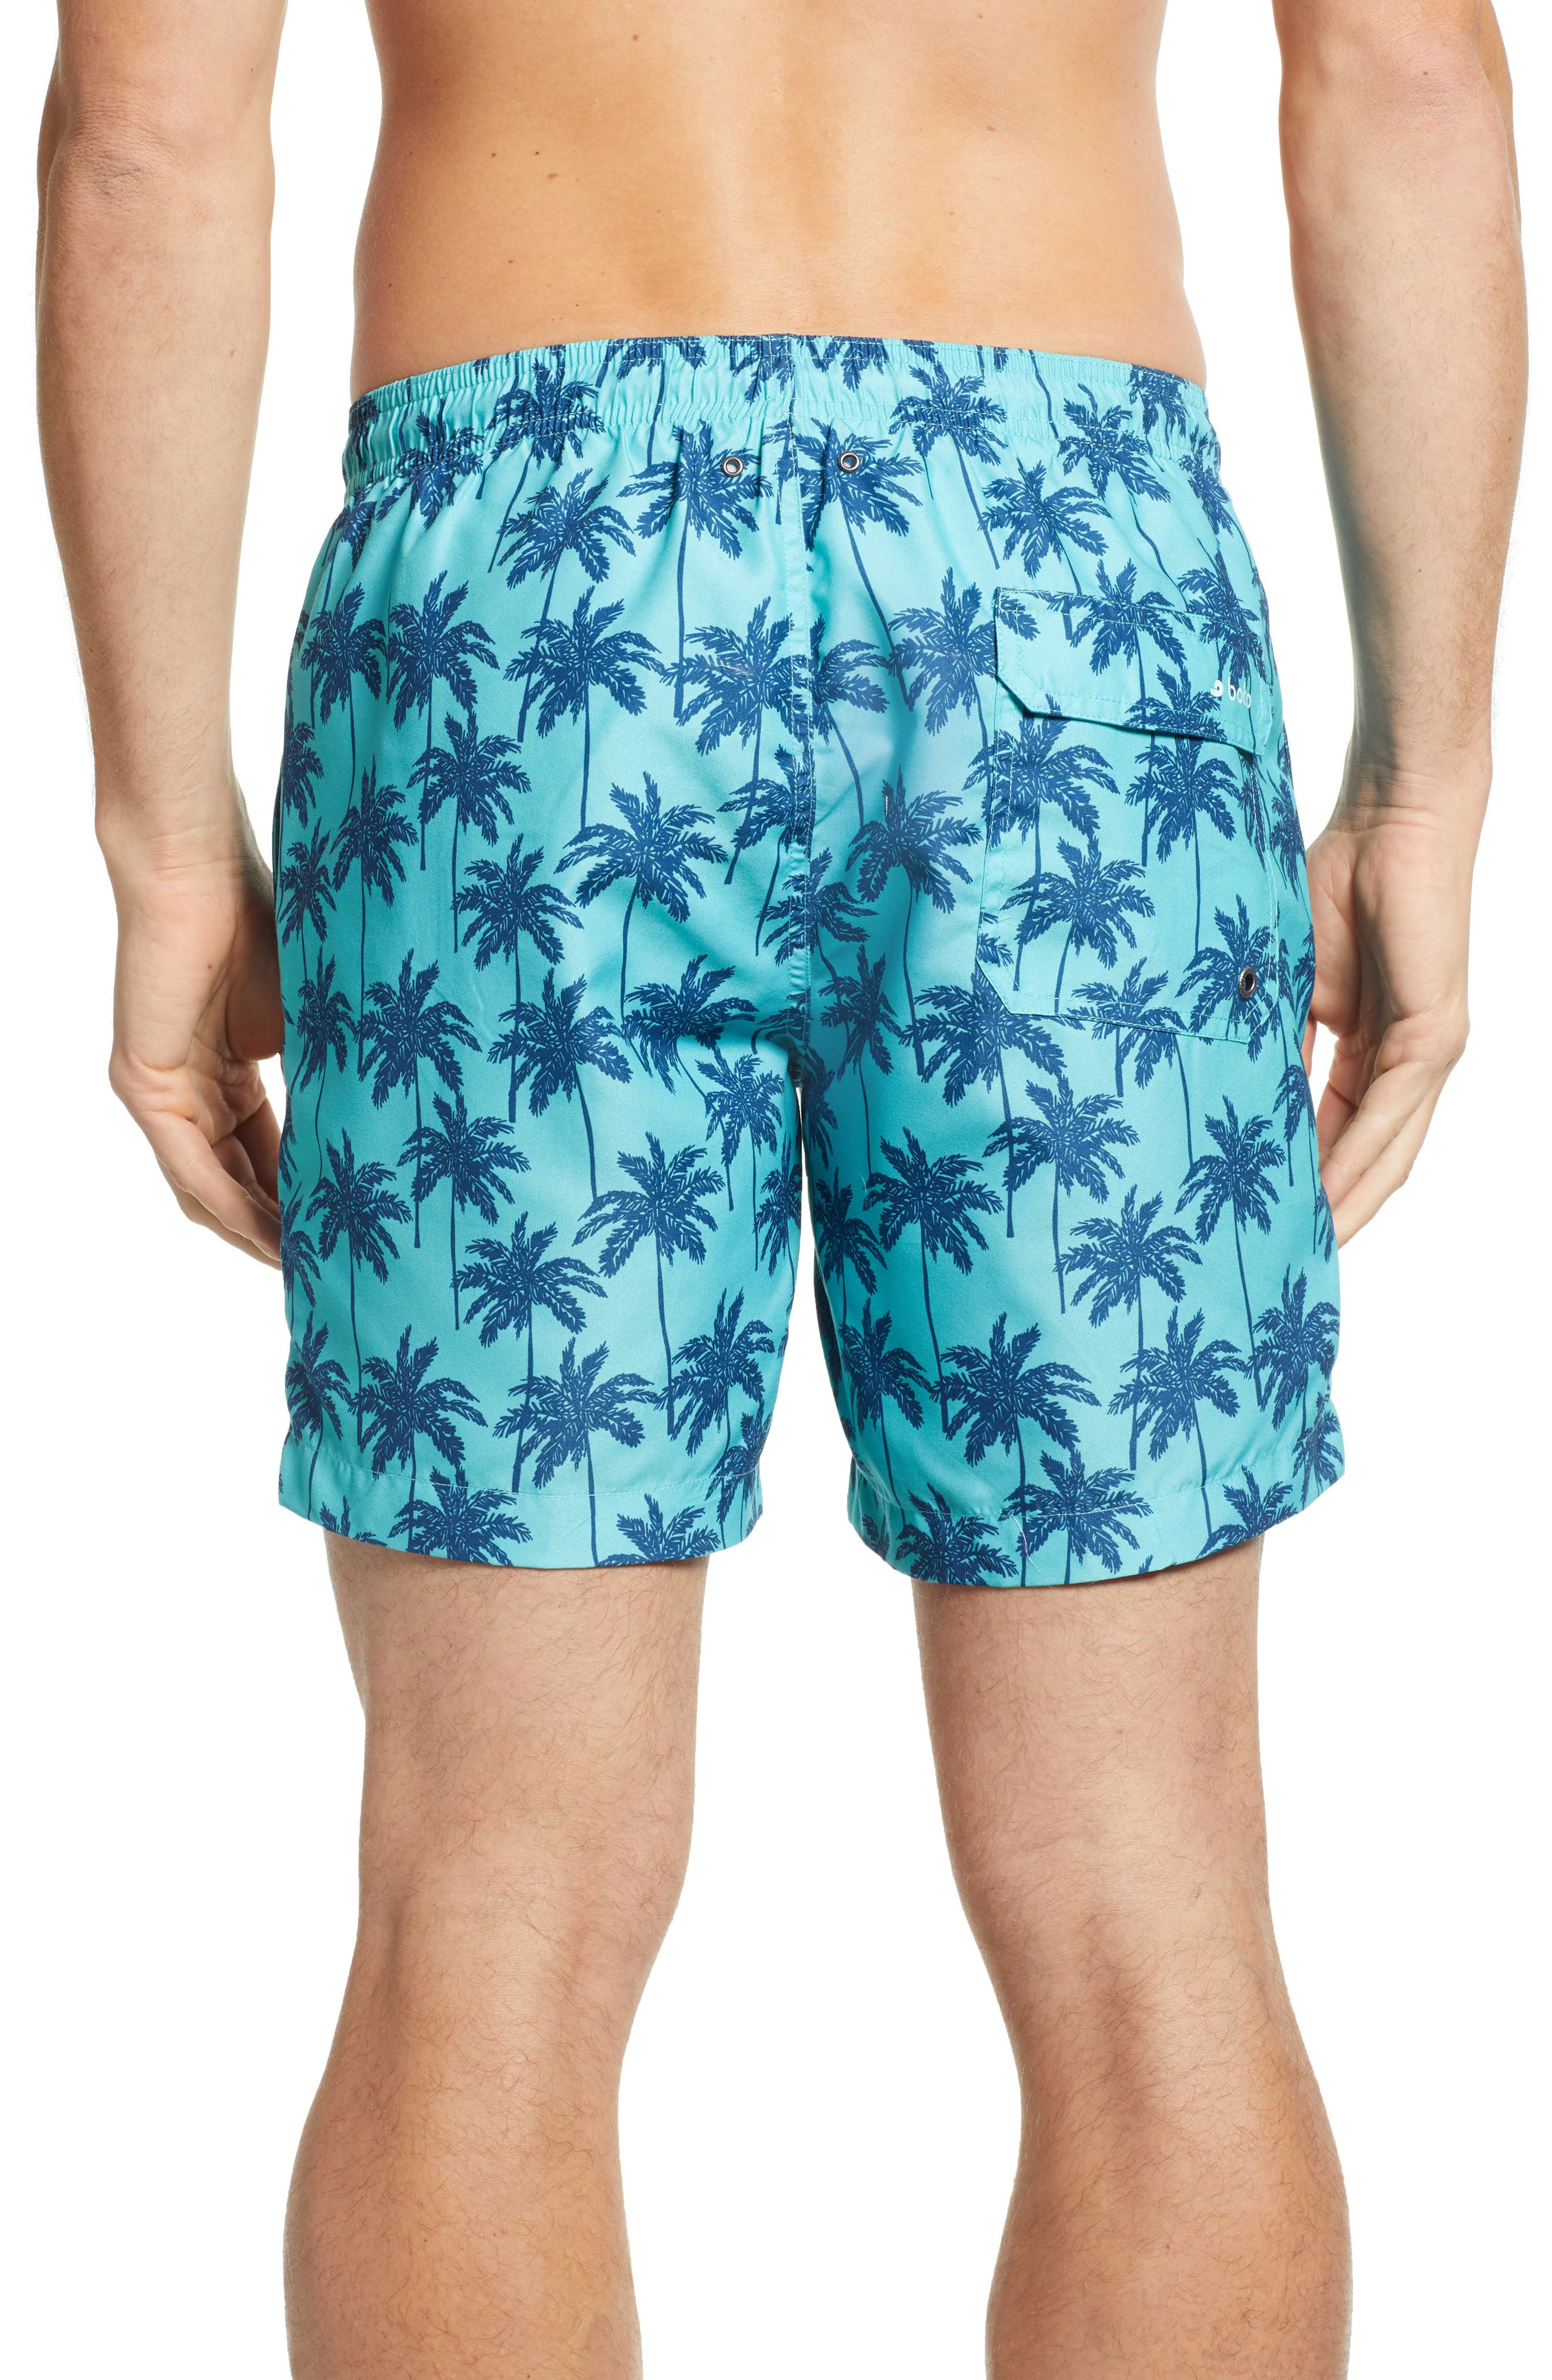 Cabo Palm Trees 6.5 Inch Swim Trunks,                             Alternate thumbnail 2, color,                             443